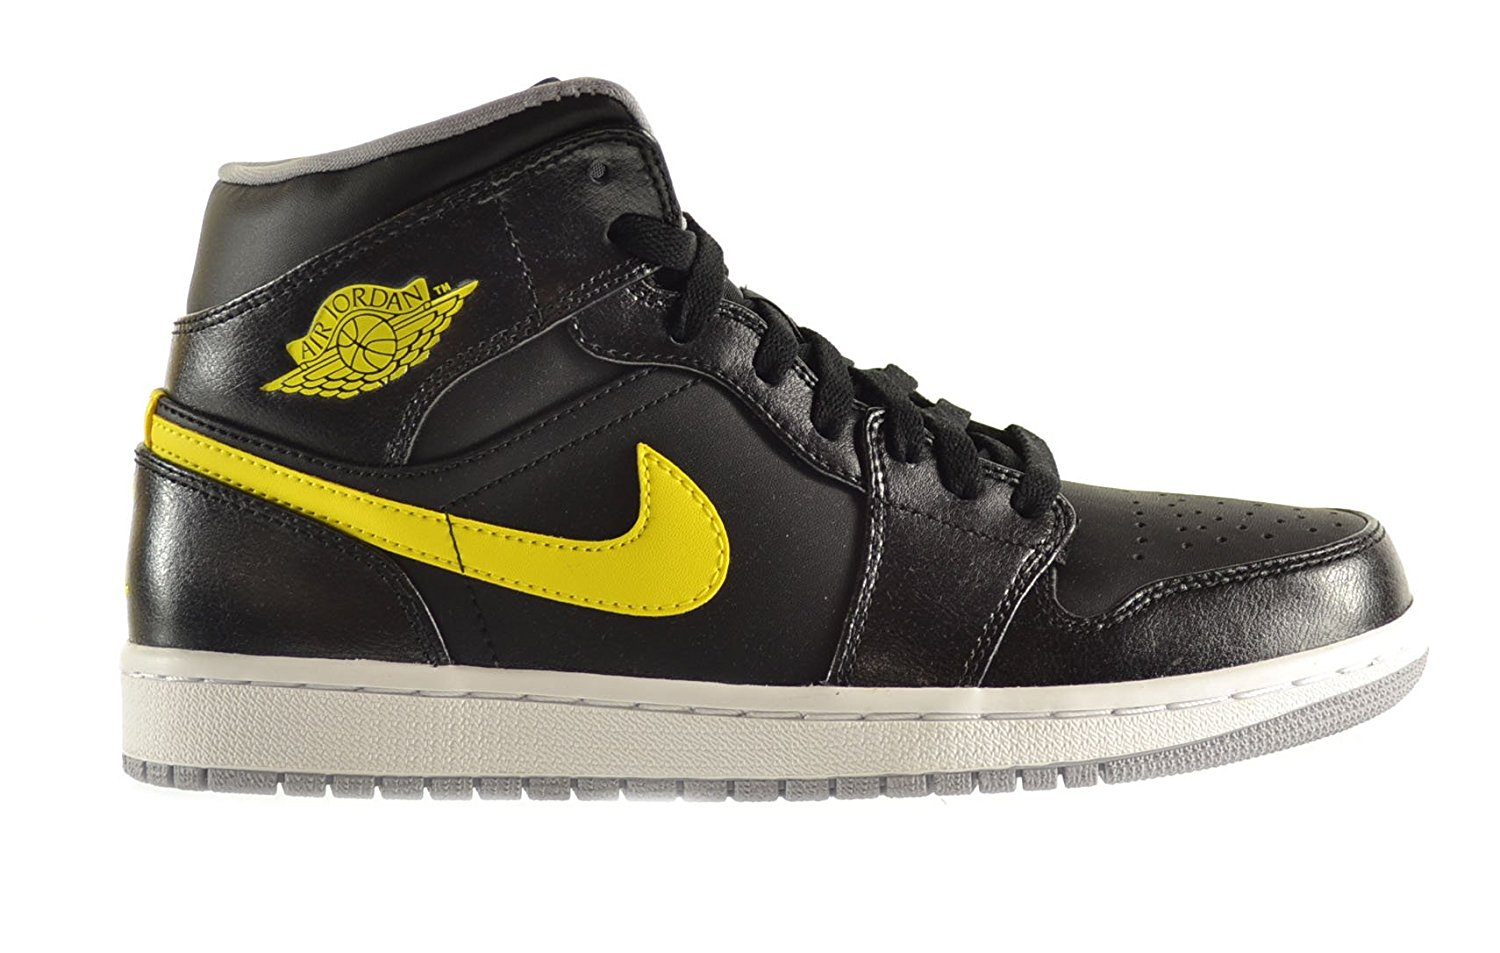 653bf9091eab Get Quotations · Air Jordan 1 Mid Men s Shoes Black Vibrant Yellow-Wolf  Grey 554724-070